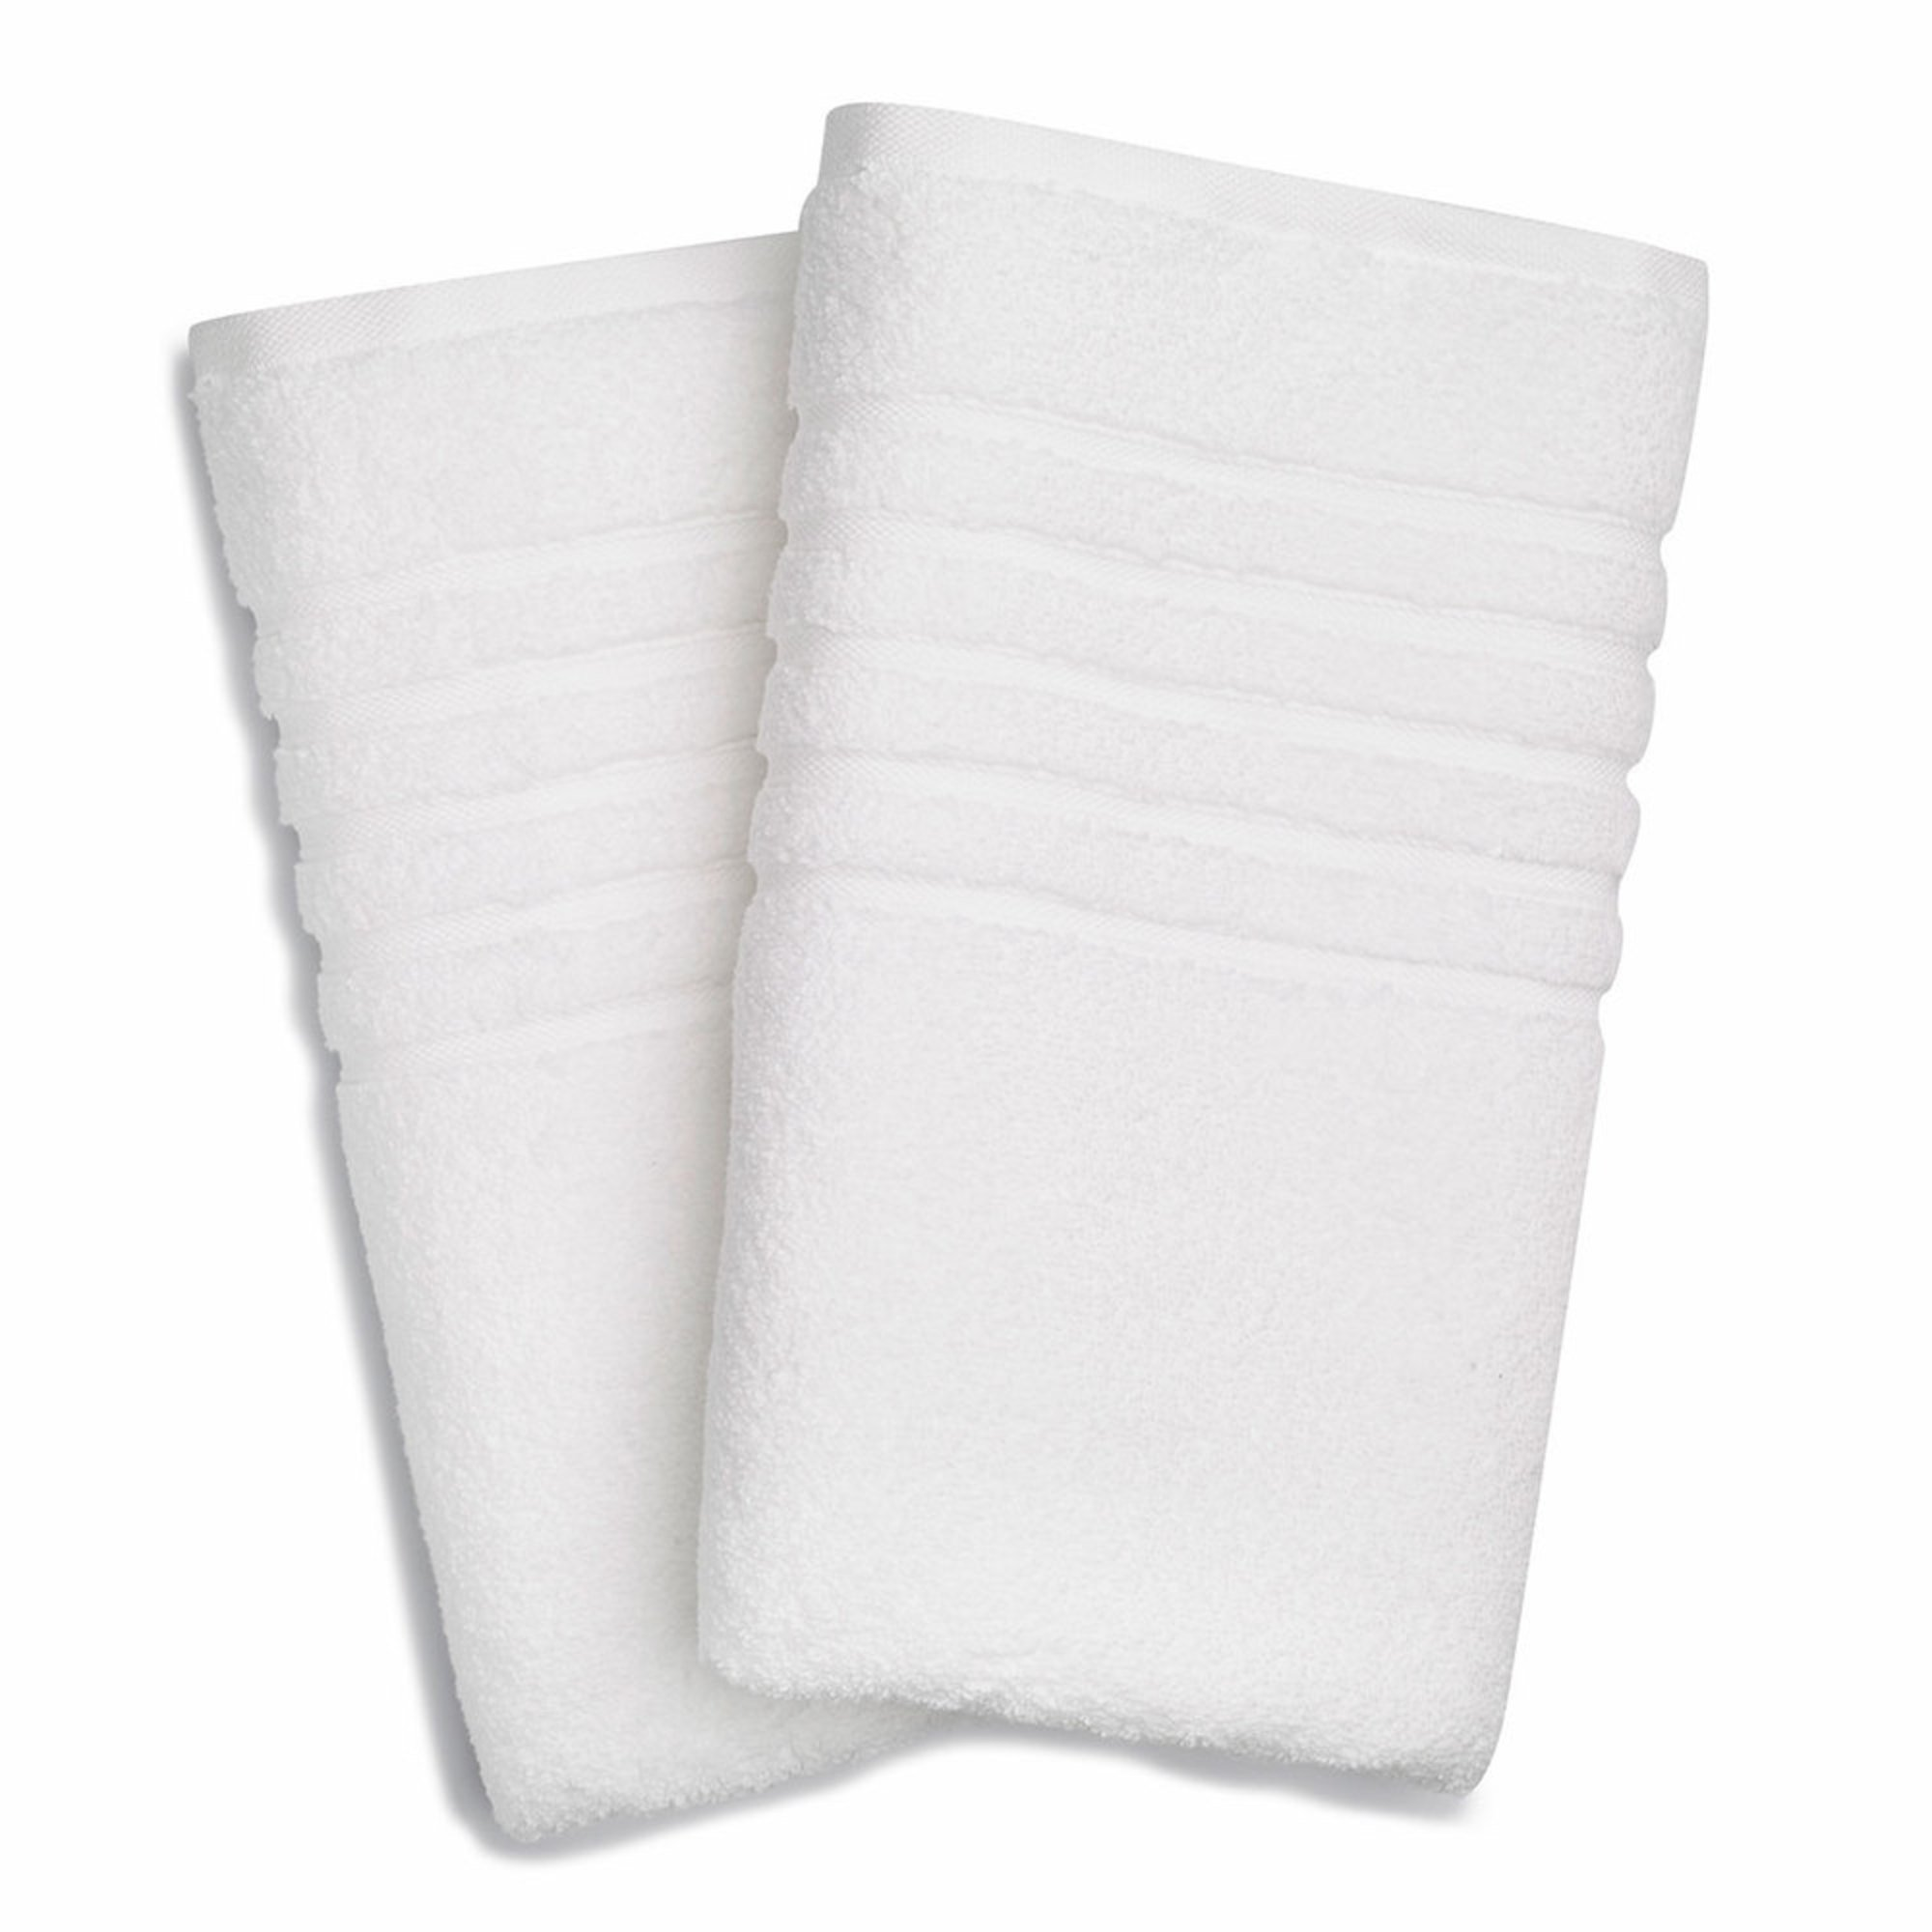 Hotel Collection Microcotton Wash Cloth, White